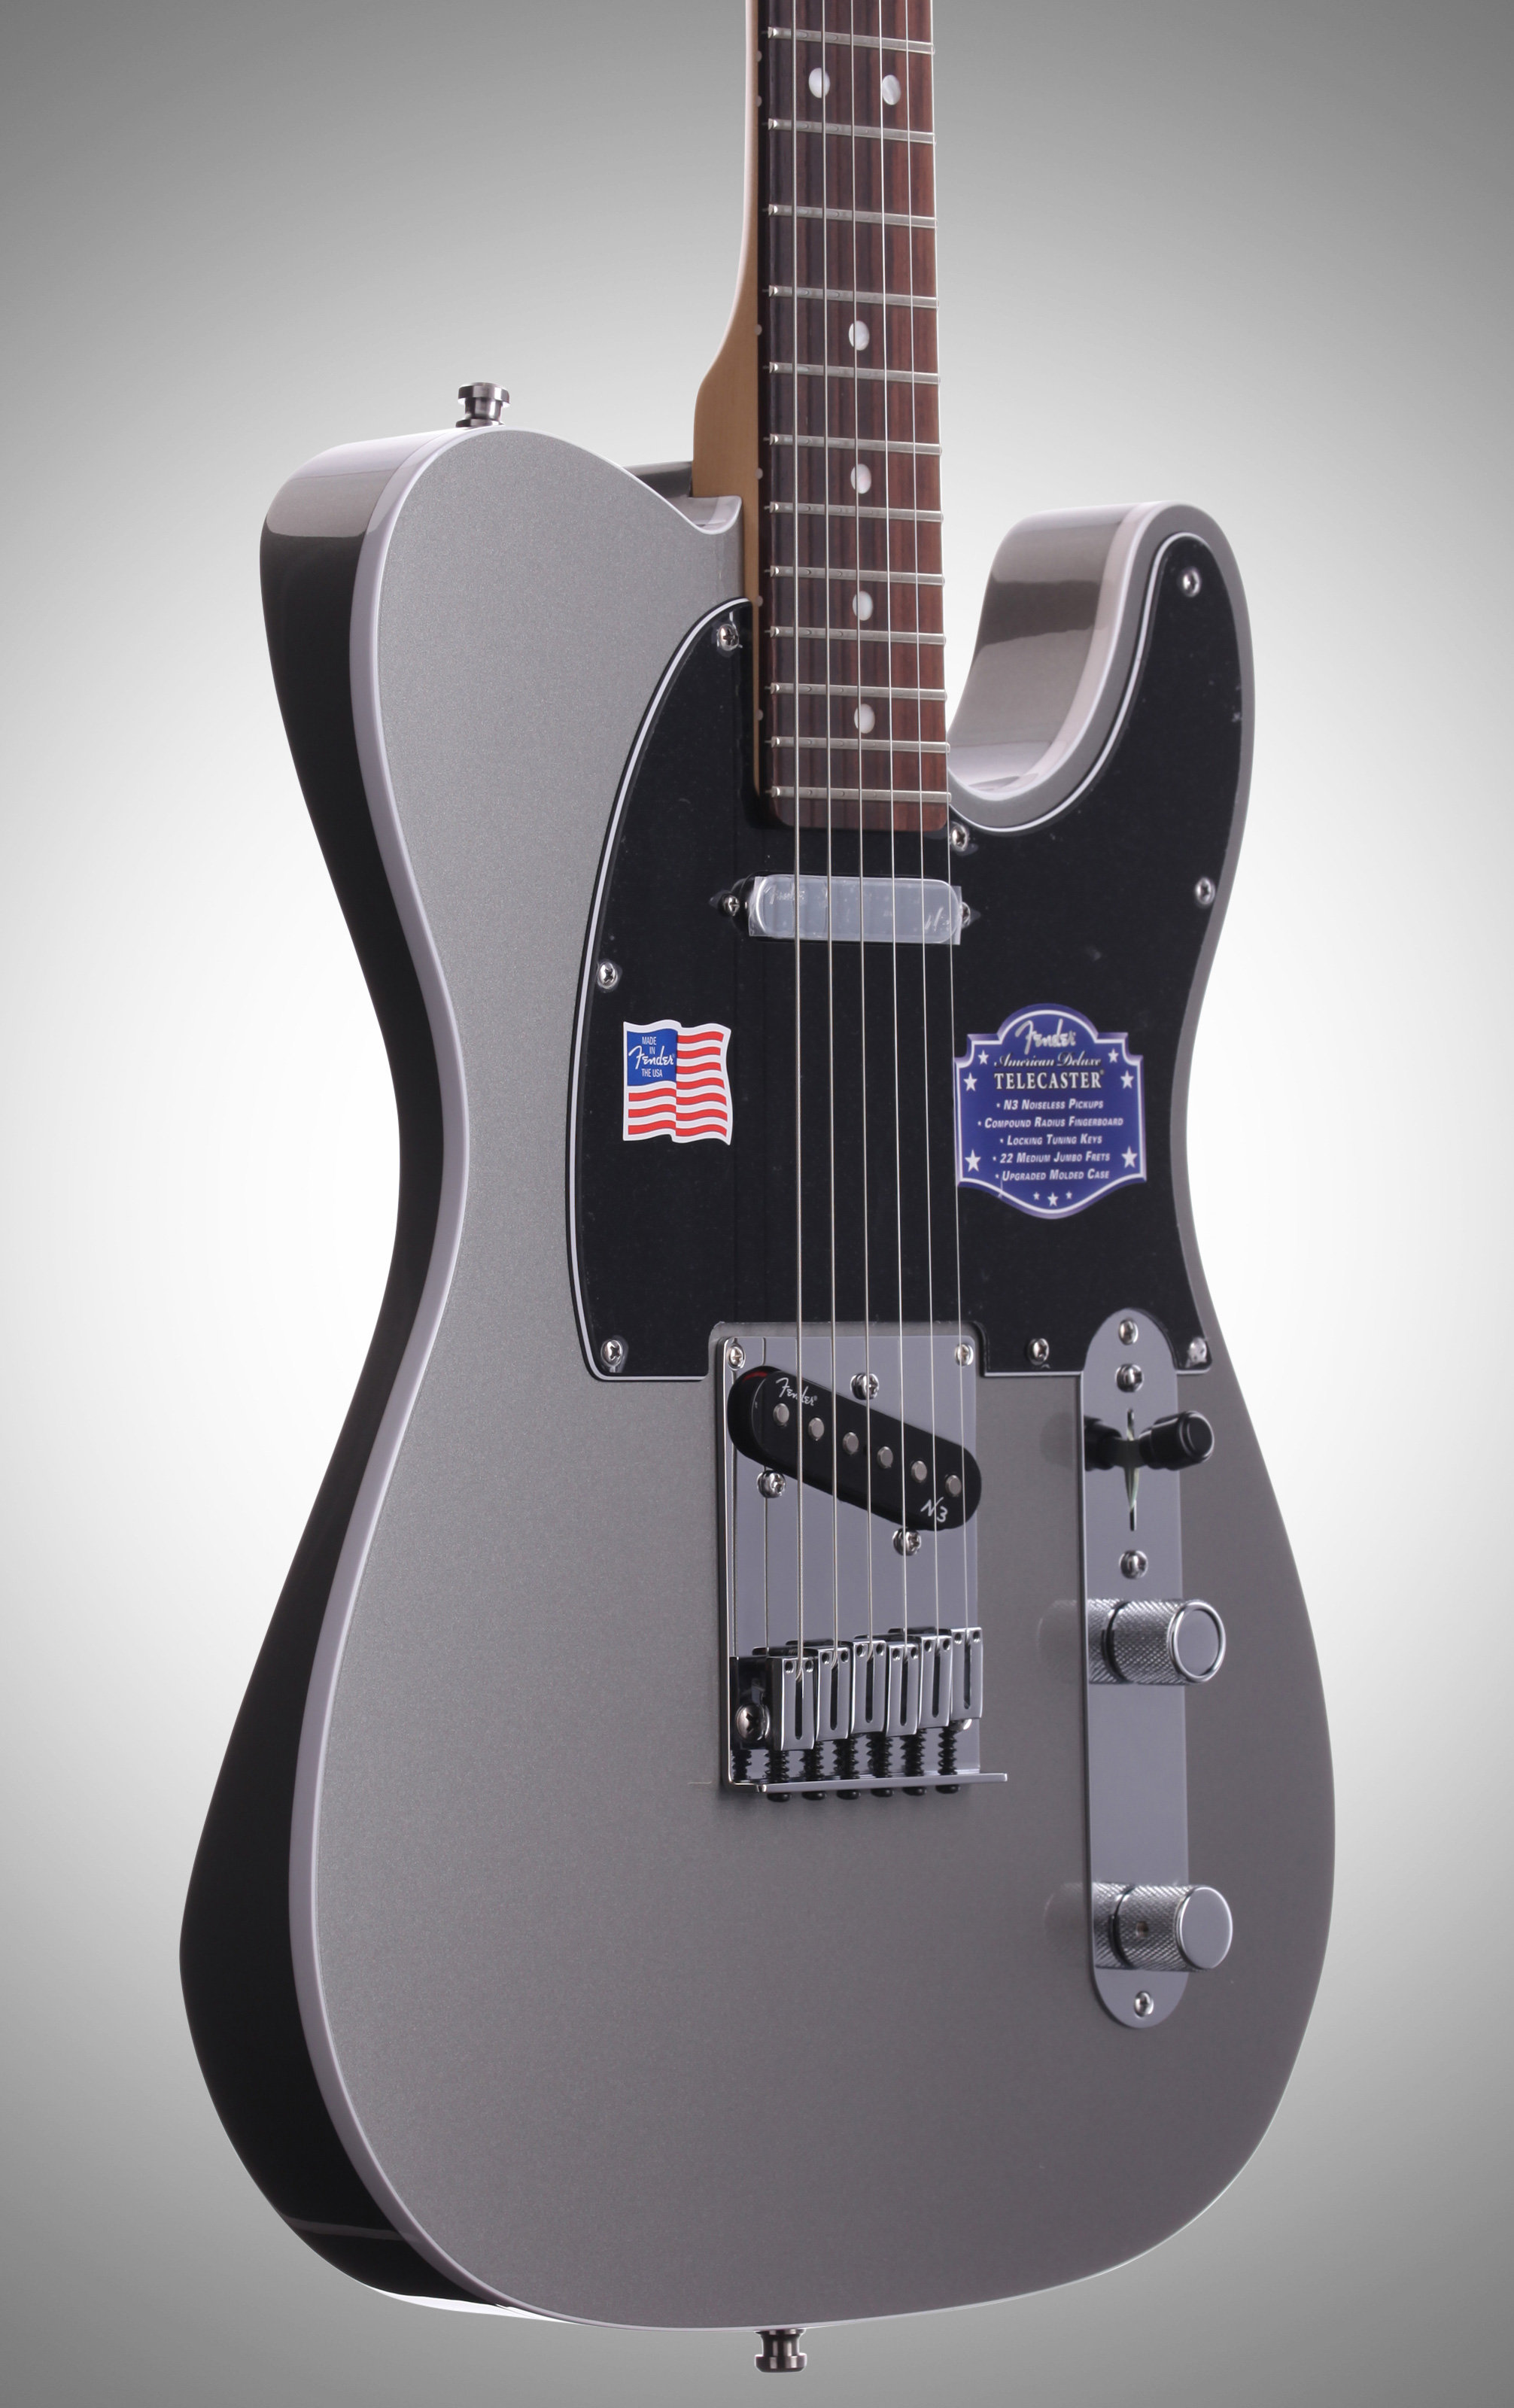 fender telecaster s1 wiring diagram parts of the outer ear american deluxe electric guitar rosewood